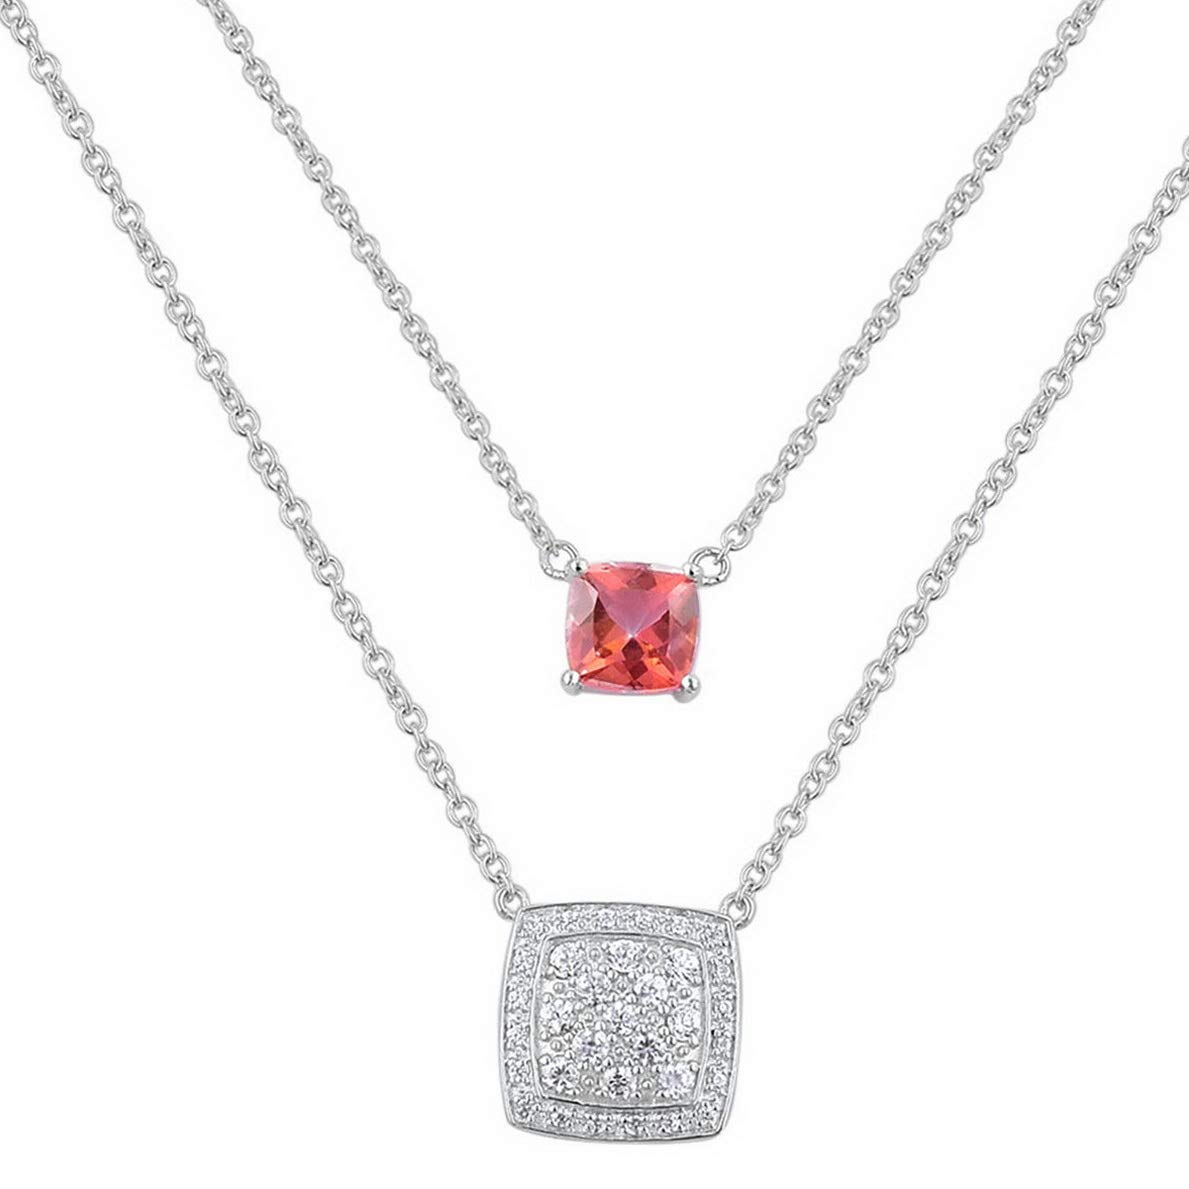 Model NCKLCS 11881 Florance jones Girls 925 Sterling Silver Topaz White Zircon Chain Necklace 20 4.010